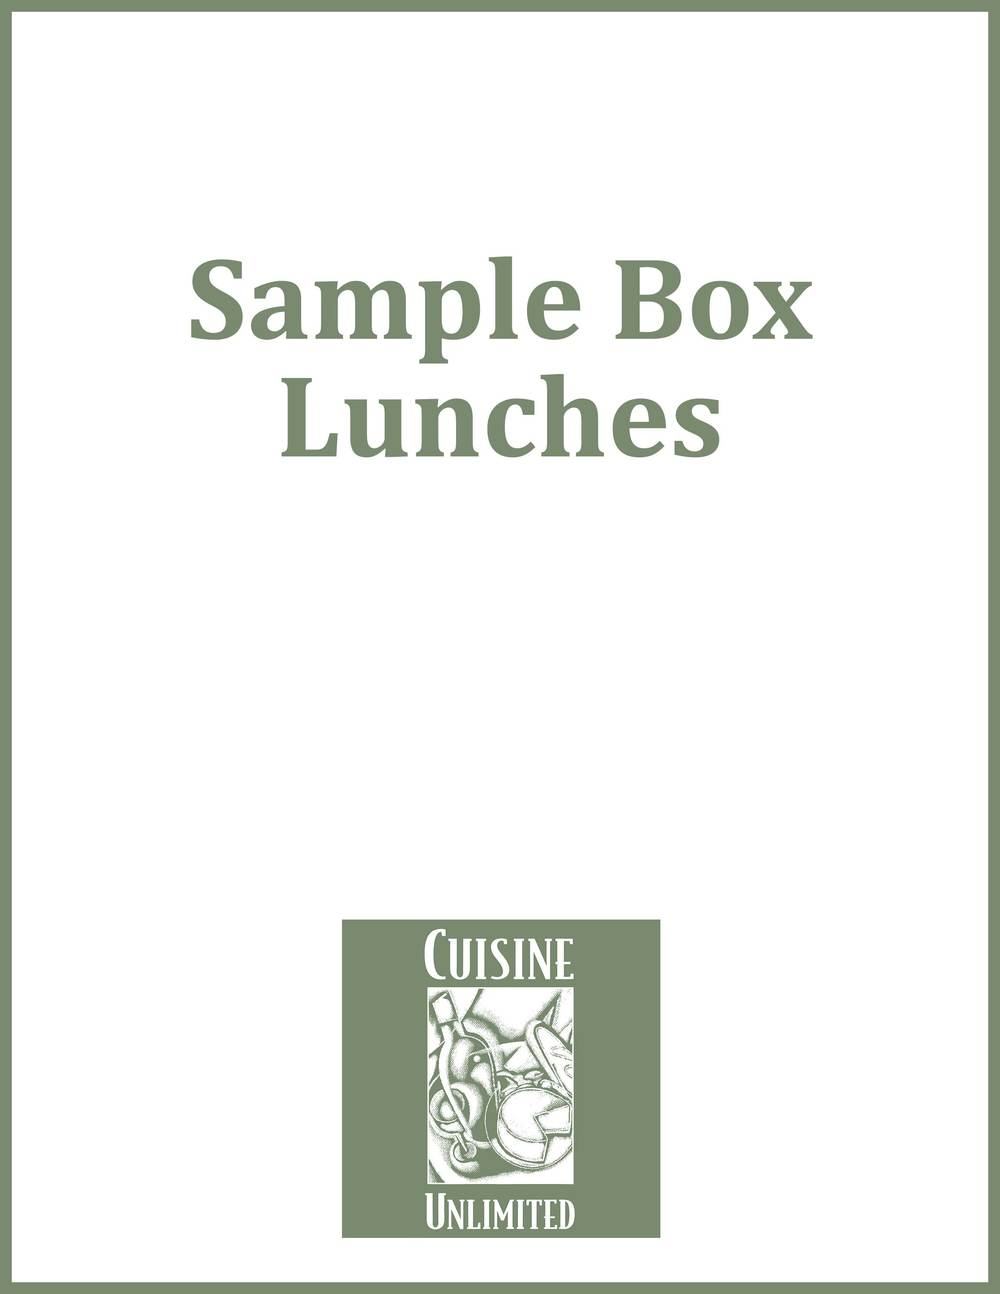 Sample Box Lunches